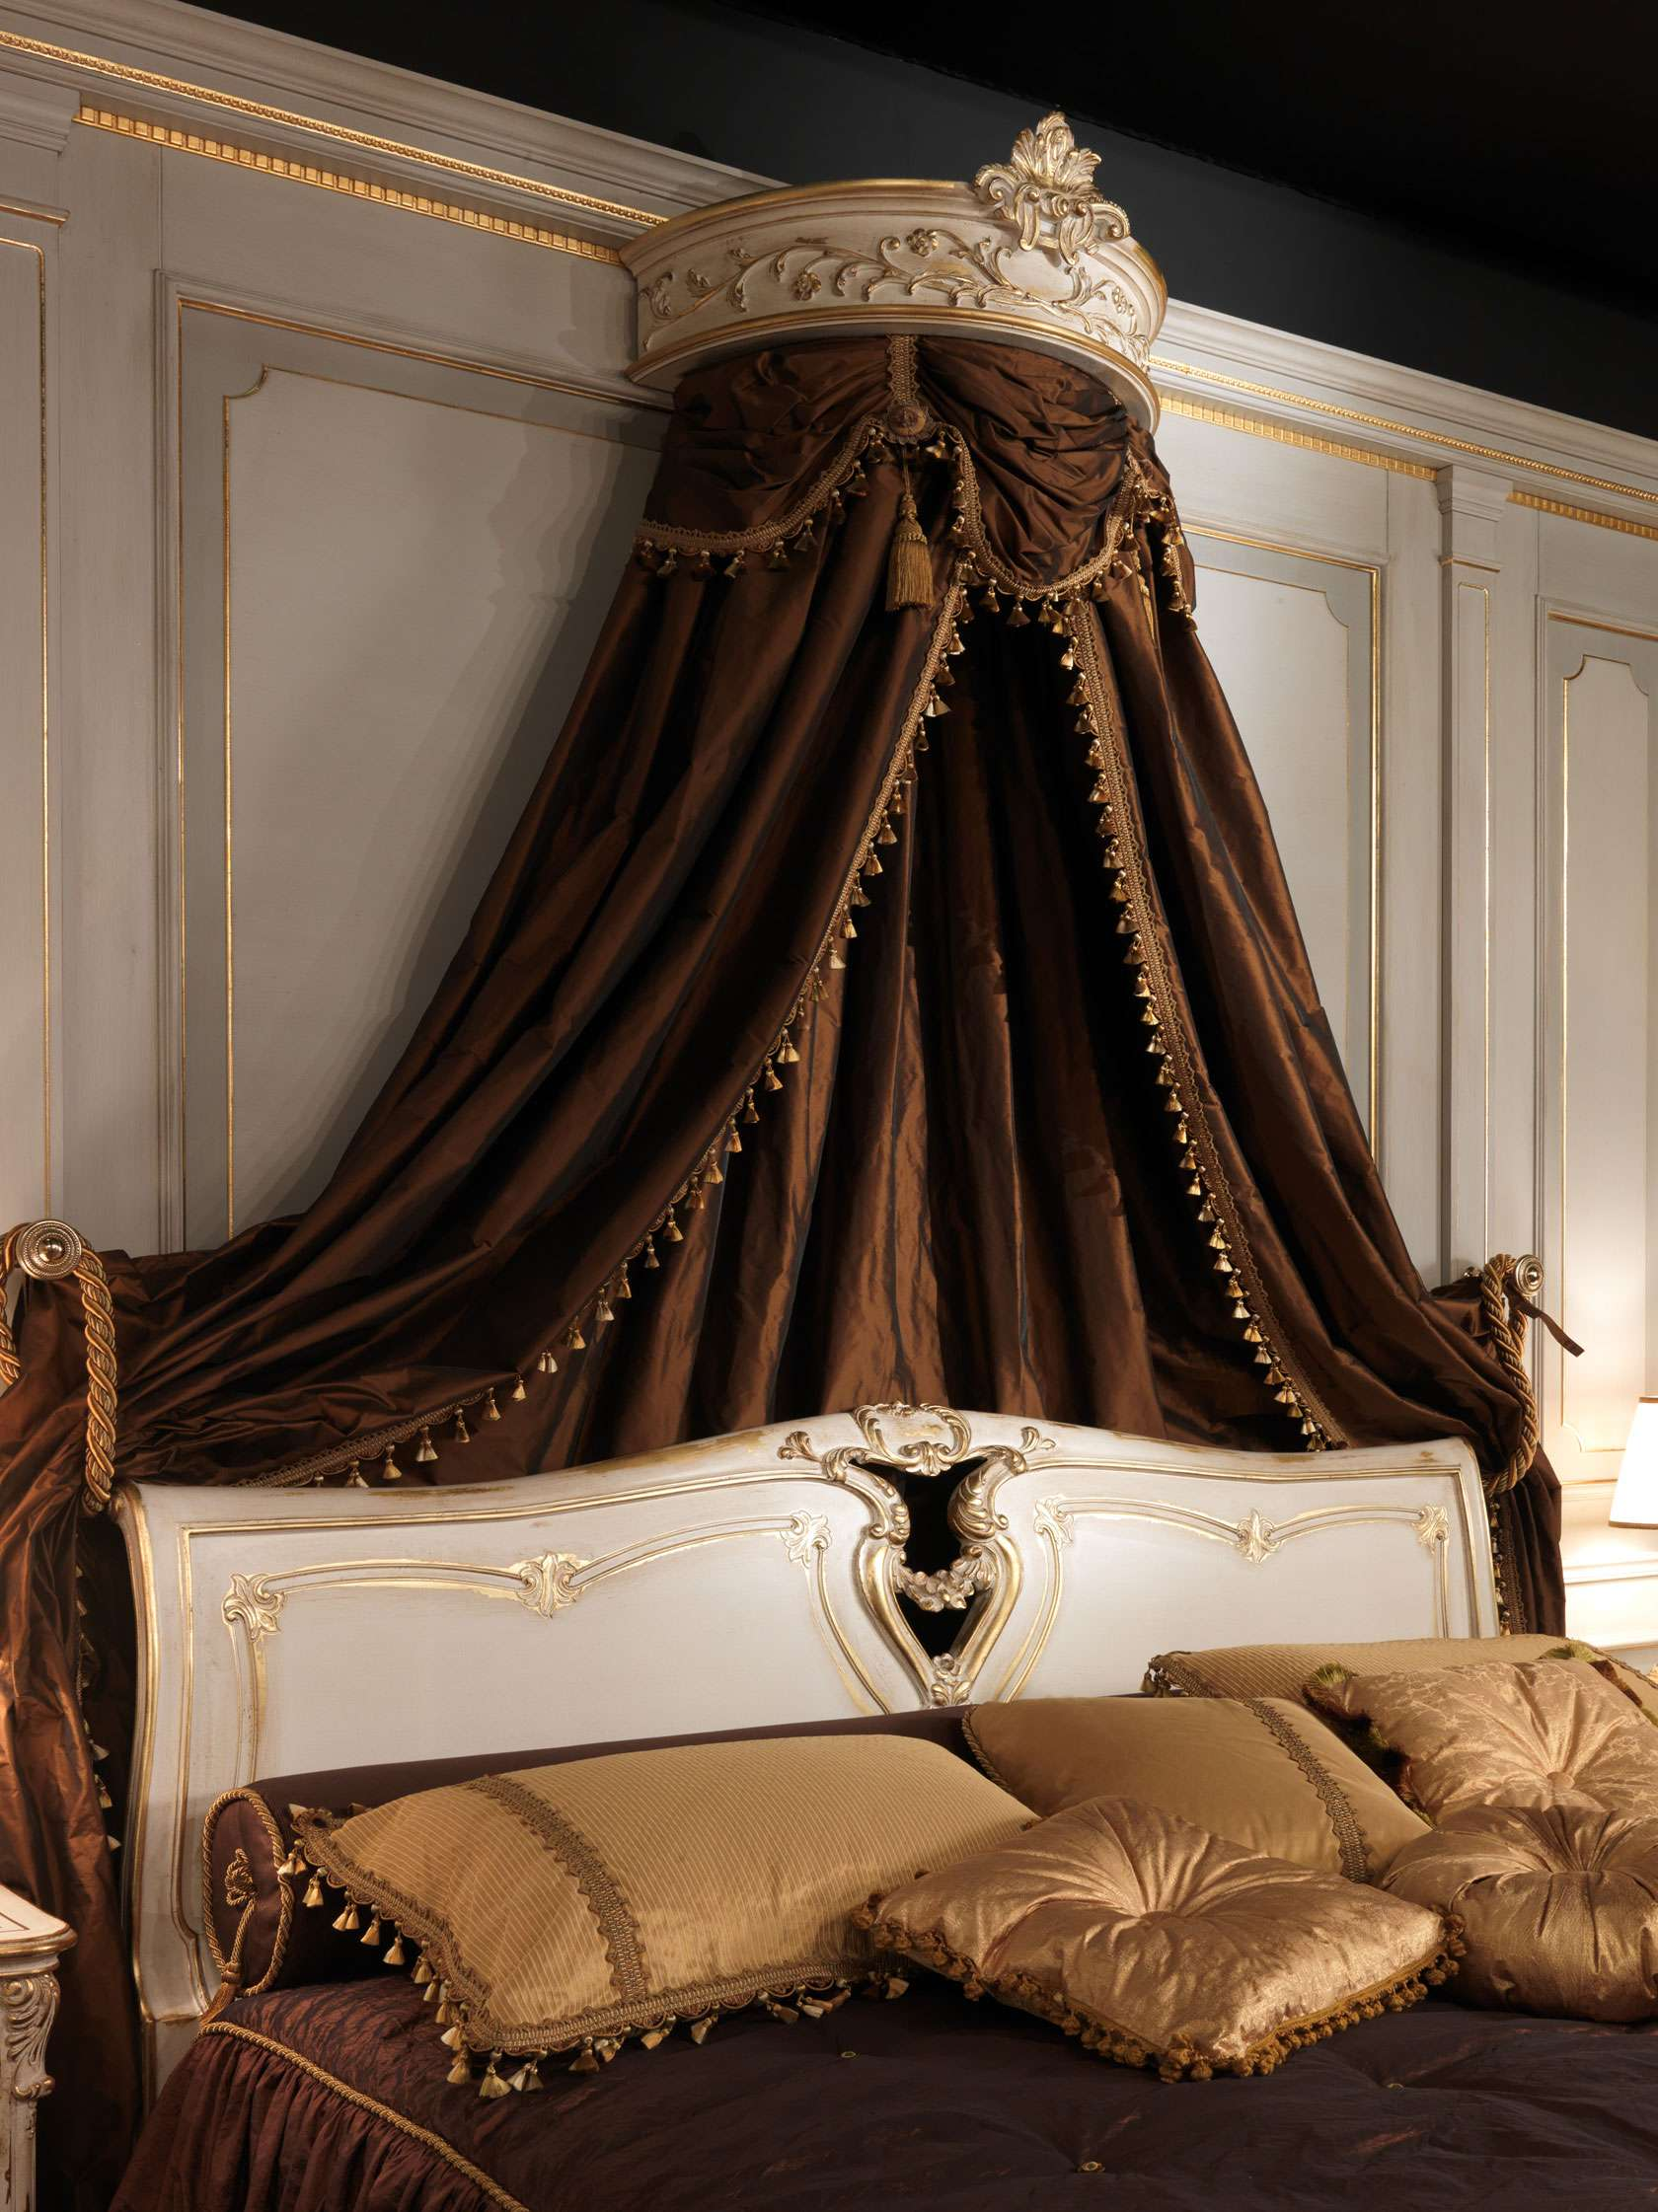 Louis xvi bedroom furniture - Louis Xvi White And Gold Classic Bedroom Vimercati Classic Furniture Bedroom Decor